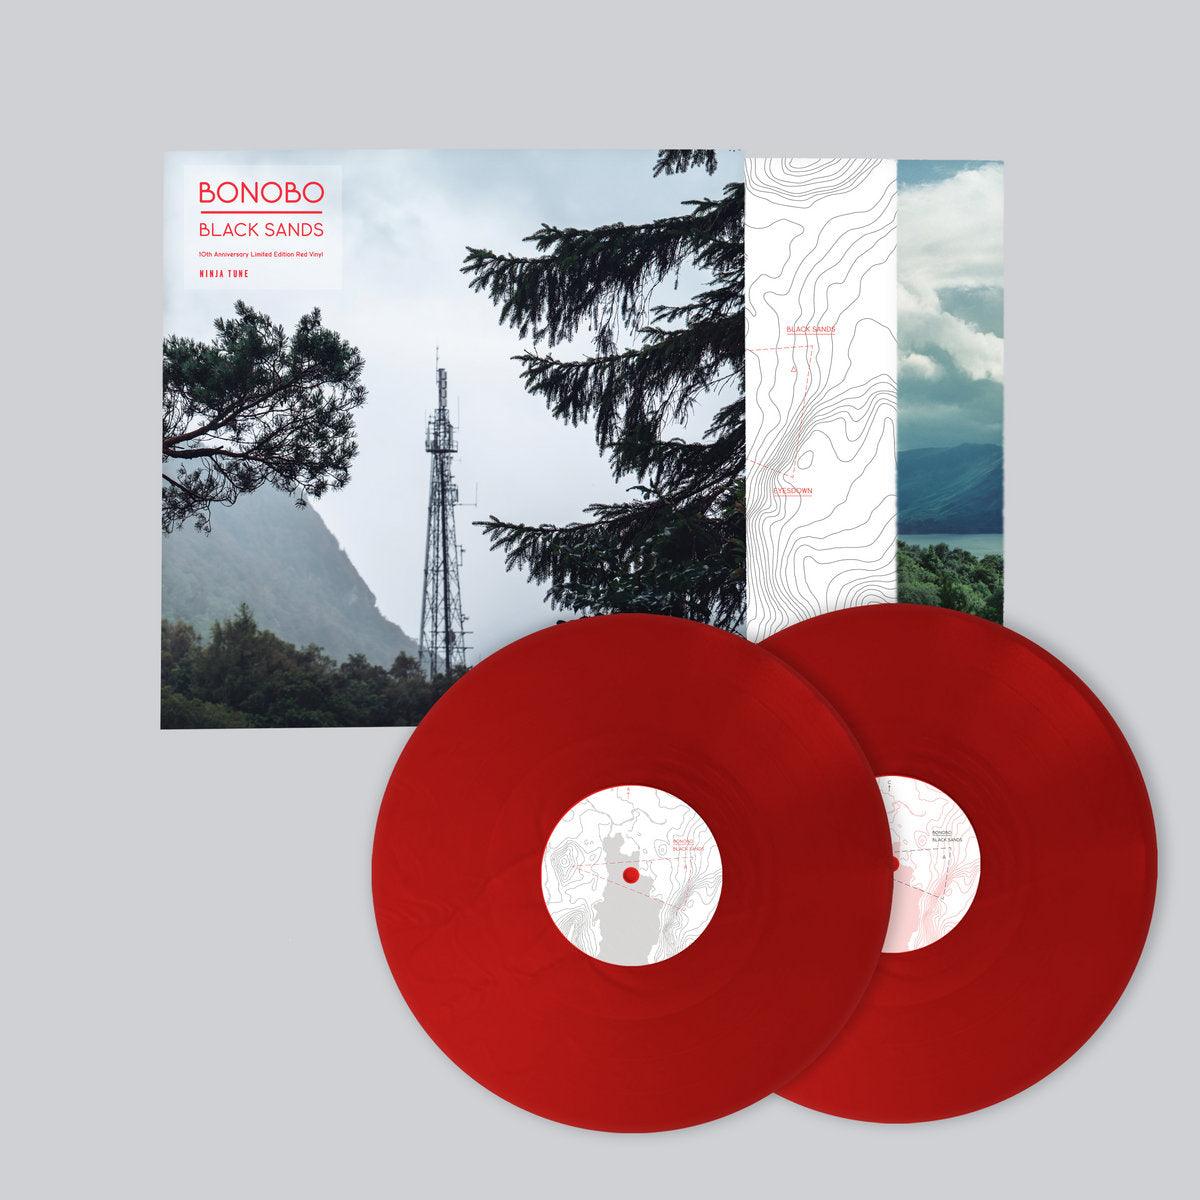 Bonobo - Black Sands 10th Anniversary Limited Edition 2LP Red Colour Vinyl Record Album